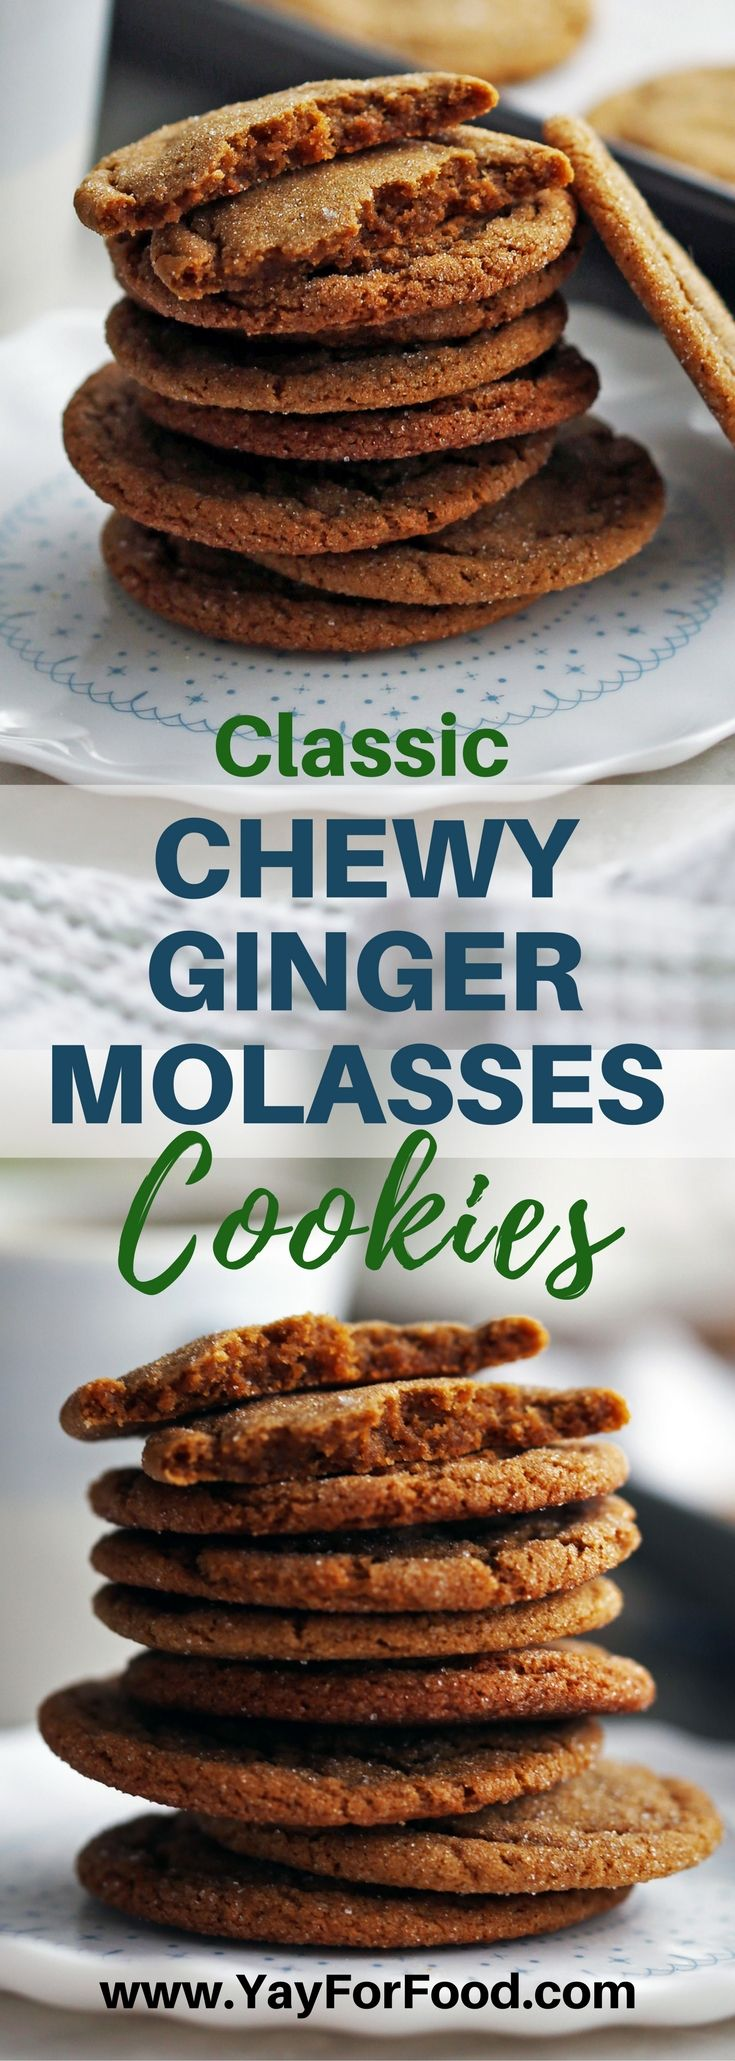 Check out these delicious sweet and spiced gingersnap (ginger molasses) cookies! Makes 32 tasty classic cookies in under 30 minutes! Desserts | #Cookies | Holiday recipes | Christmas Recipes | Sweets | Easy Recipes